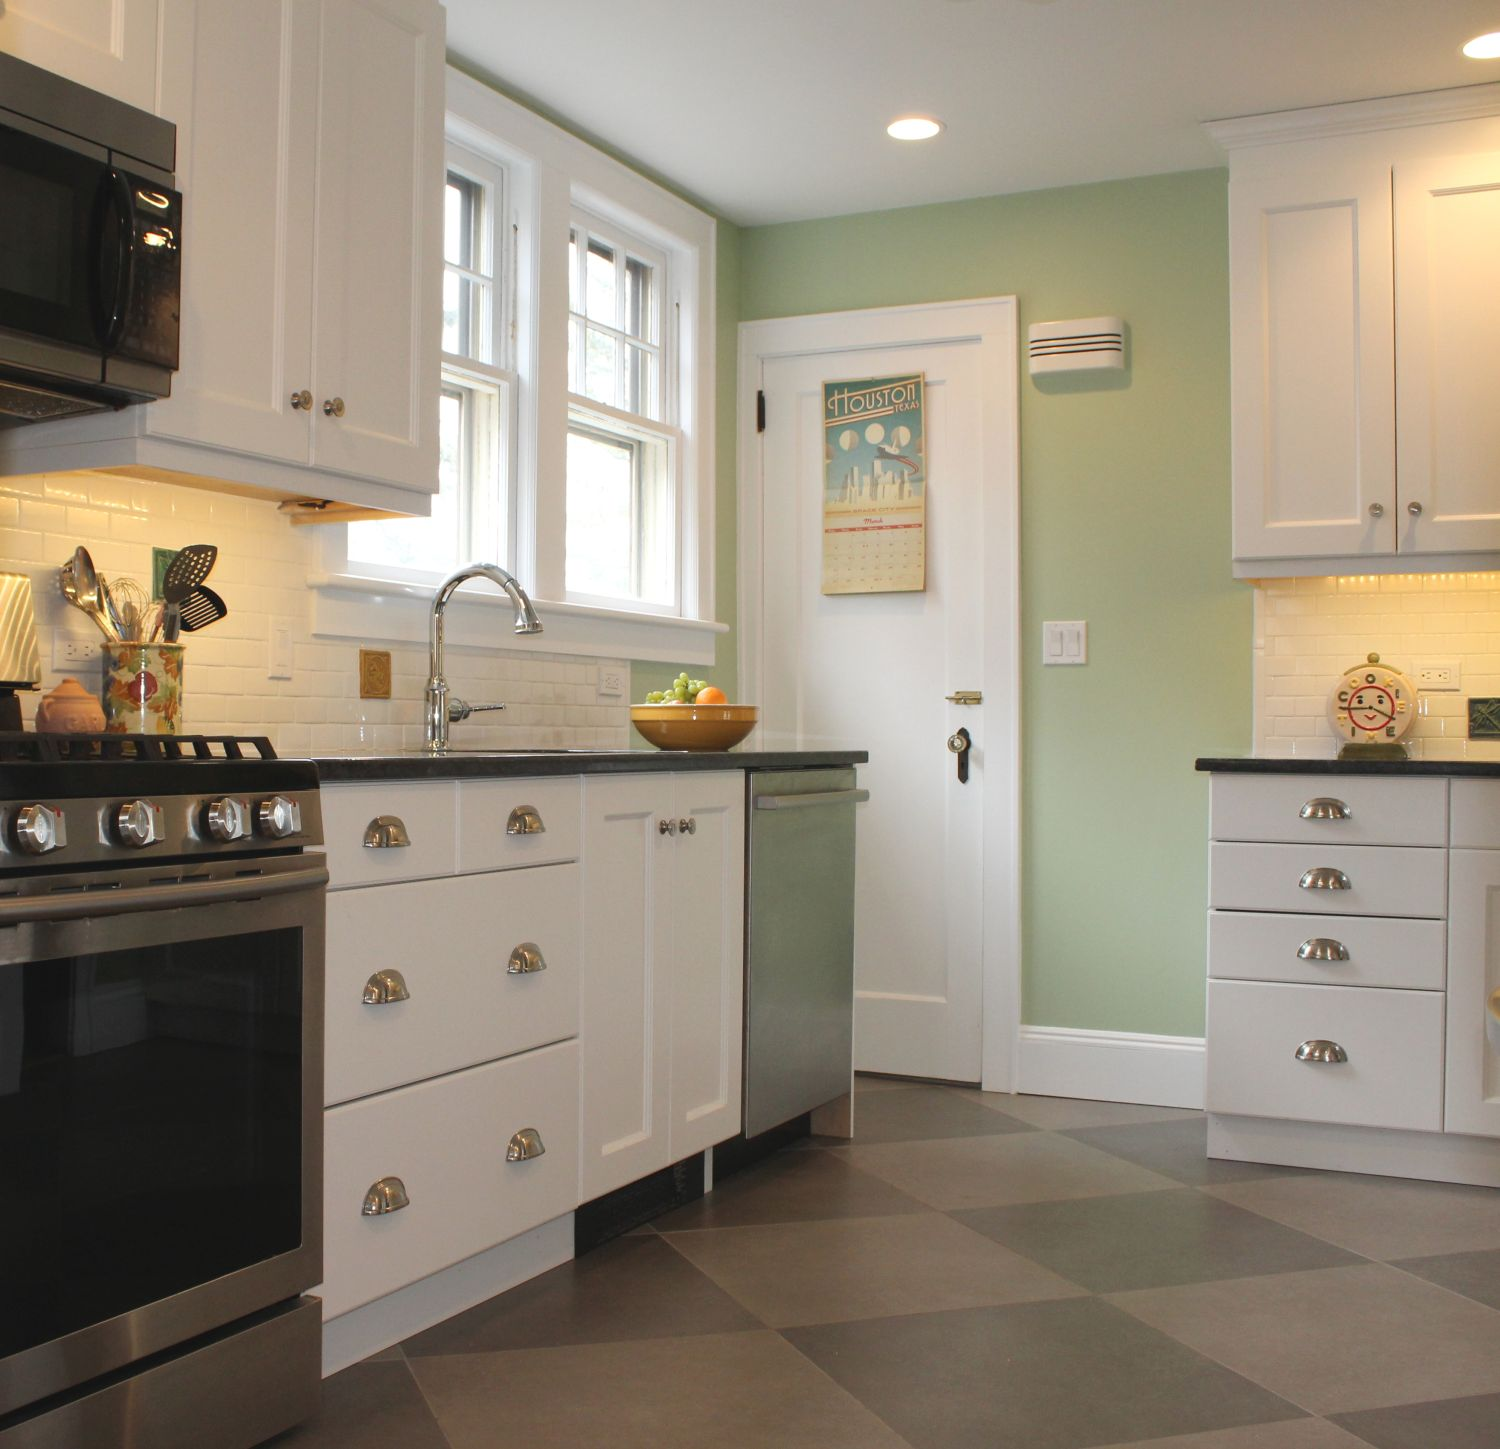 A kitchen with a checkered floor